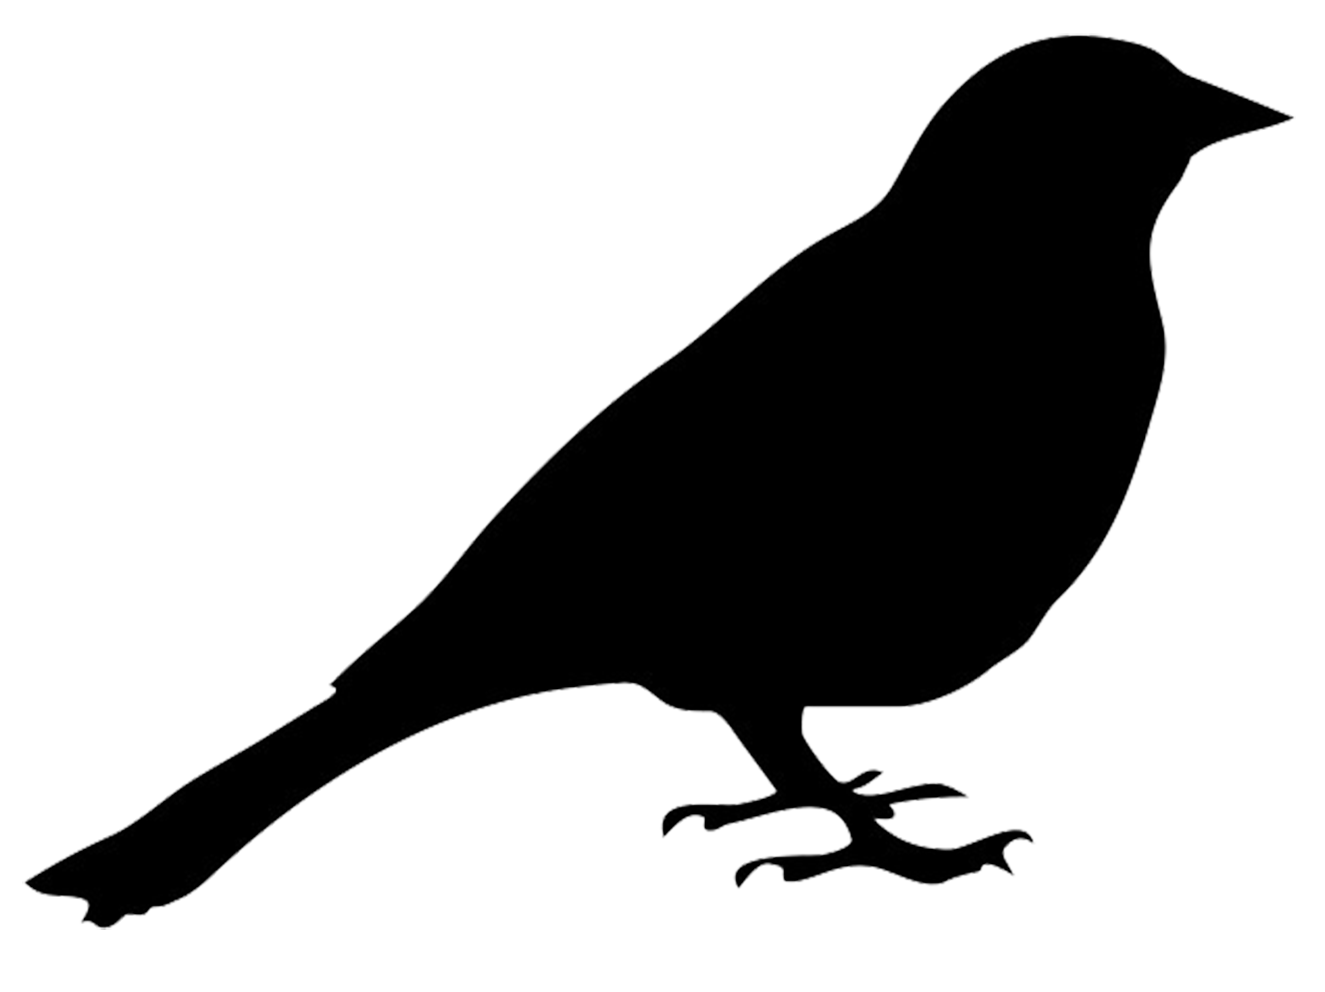 Bird Silhouettes - Bird Outline PNG HD